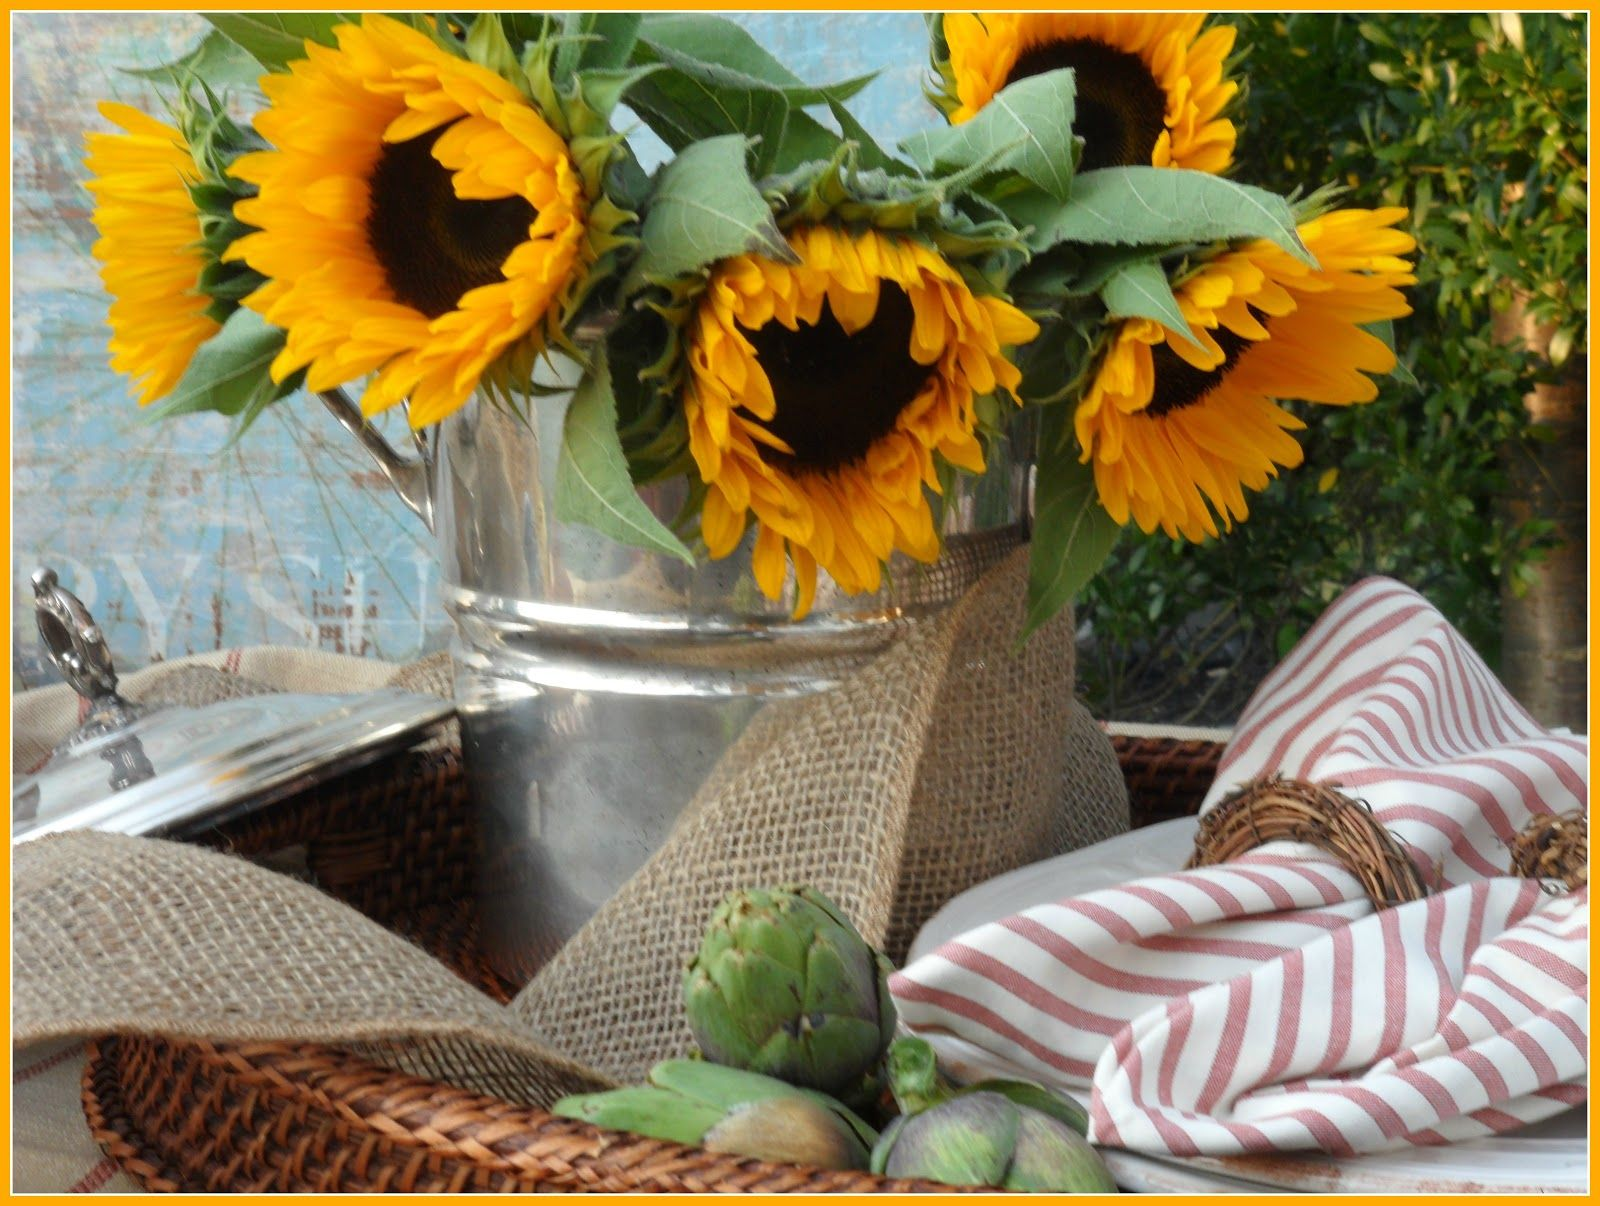 Rosemary and Thyme: Sunflowers to Brighten My Day